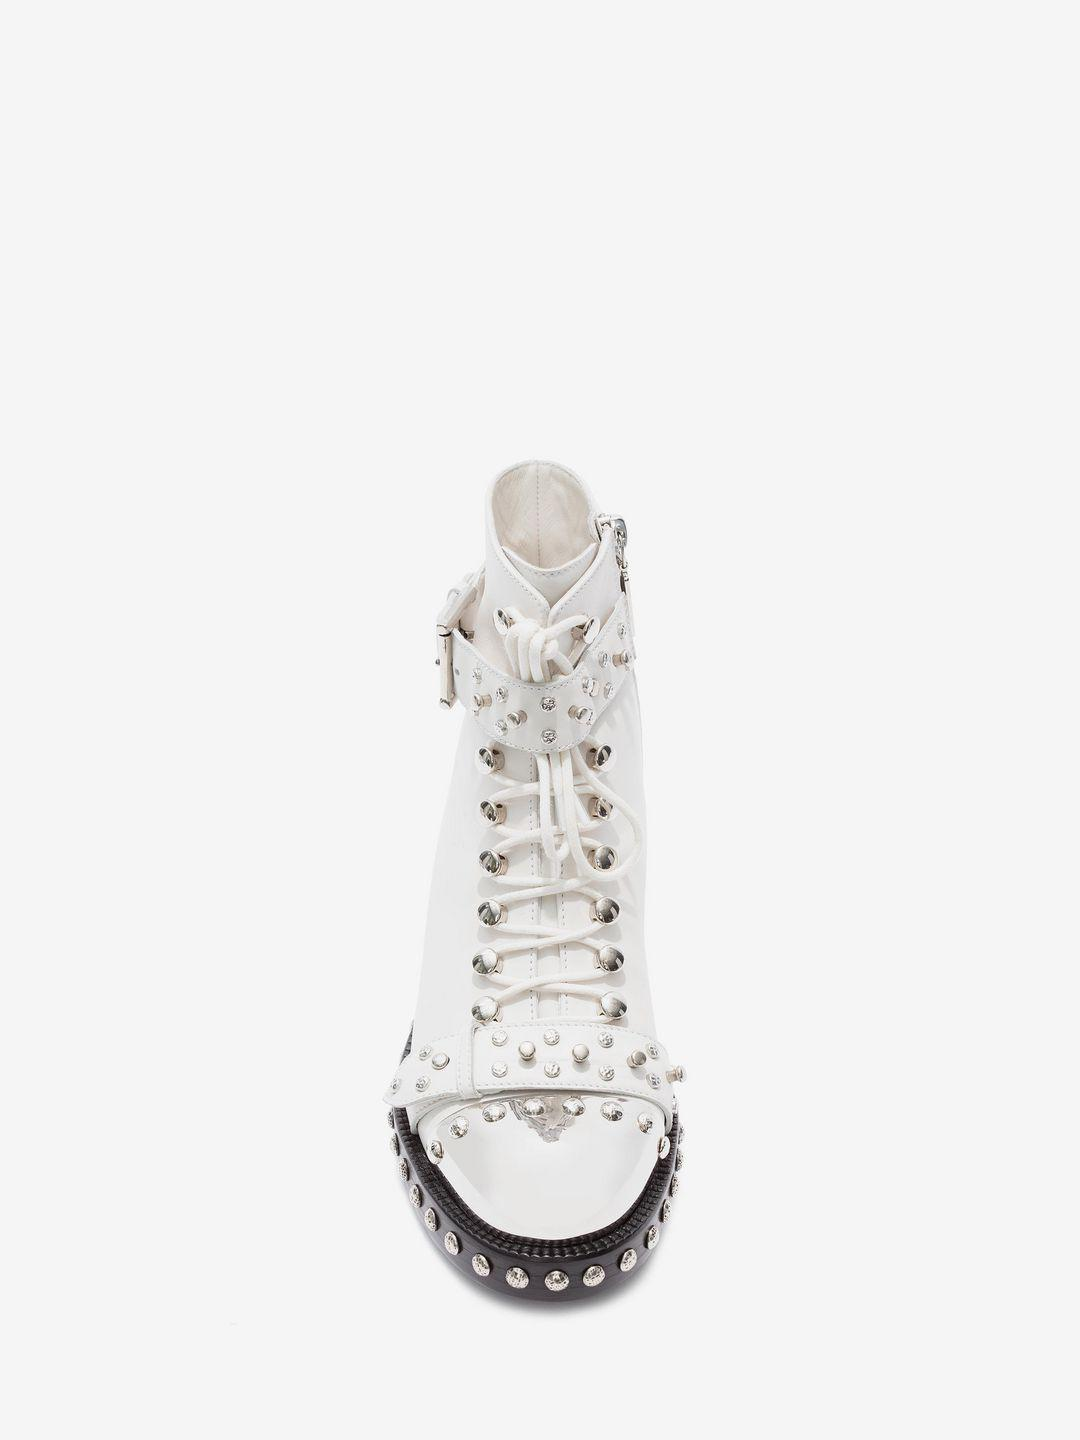 Alexander McQueen Leather Hobnail Ankle Boot in Ivory (White)